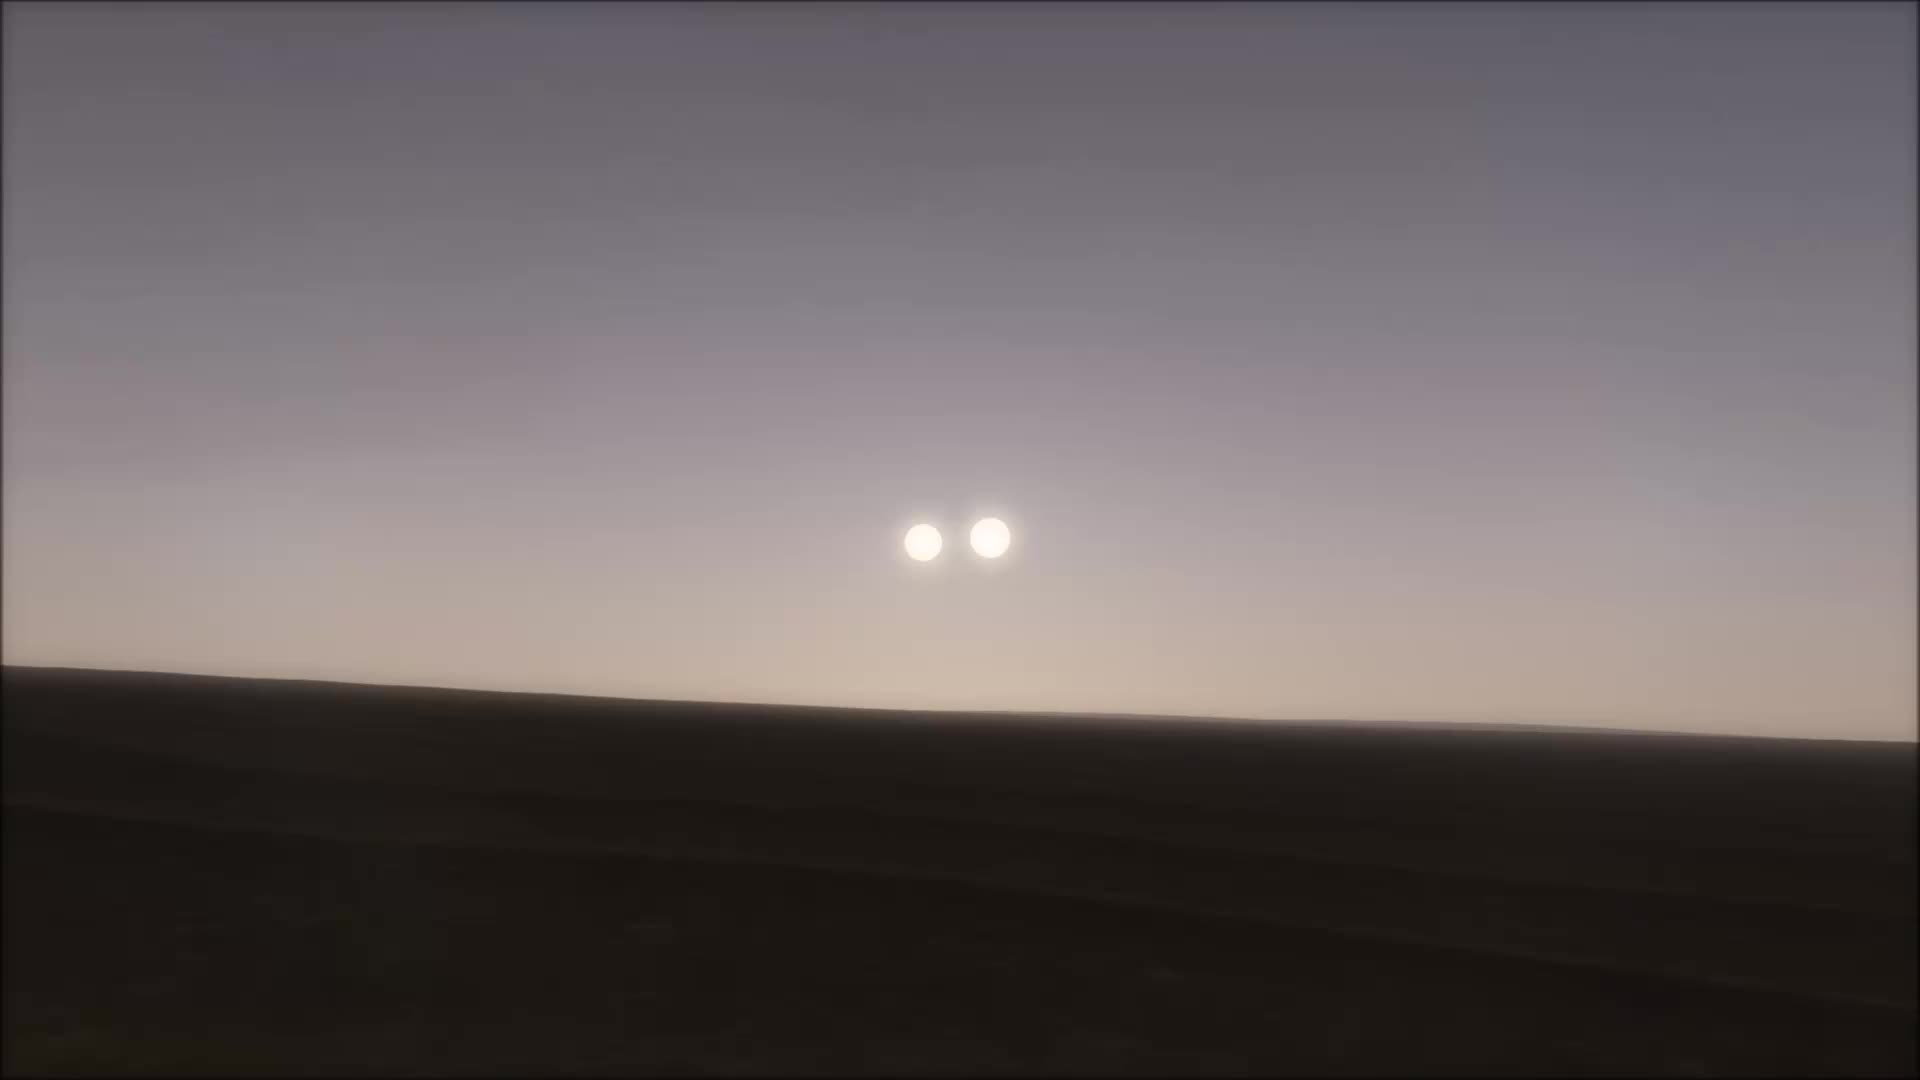 spaceengine, This planet darkens every 12 hours when one of its stars passes in front of the other (reddit) GIFs